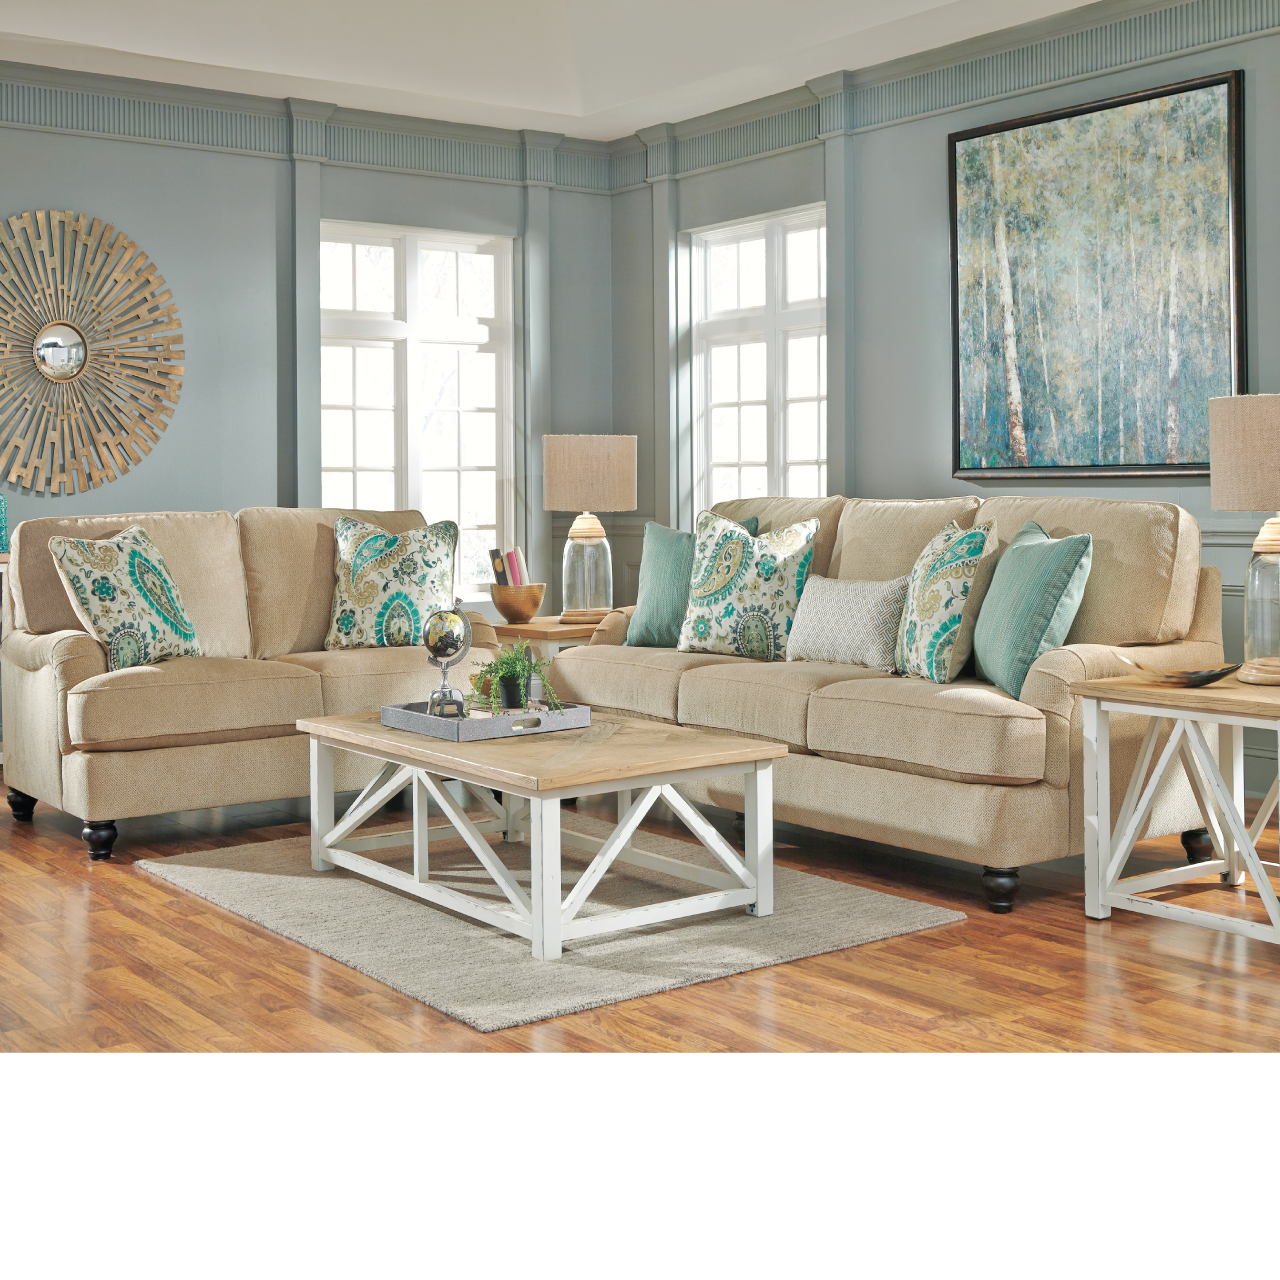 Coastal living room ideas lochian sofa by ashley for Sitting room furniture ideas